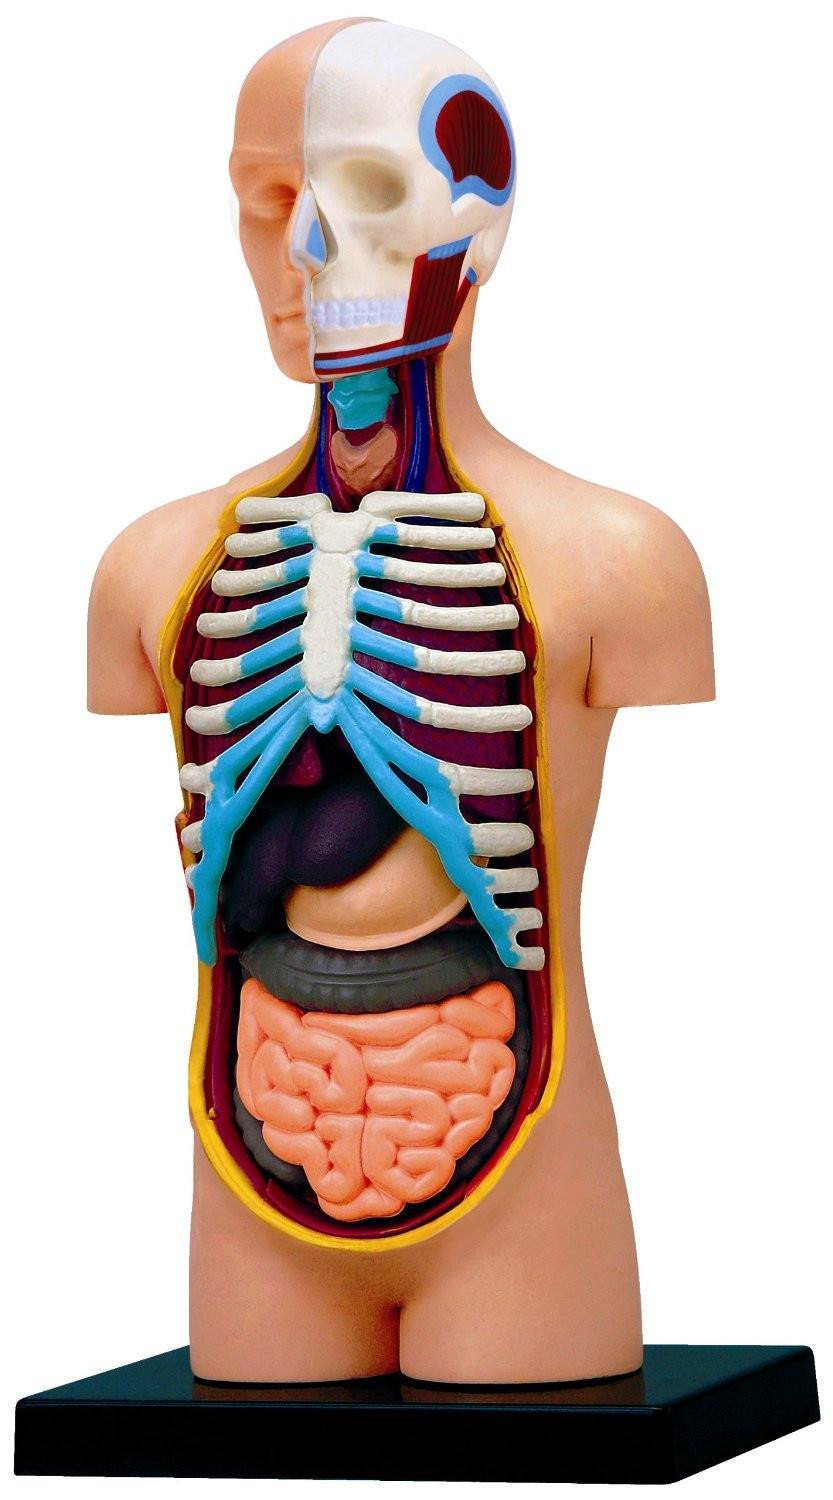 4D Vision Anatomy Puzzle - Human Torso - RightToLearn.com.sg